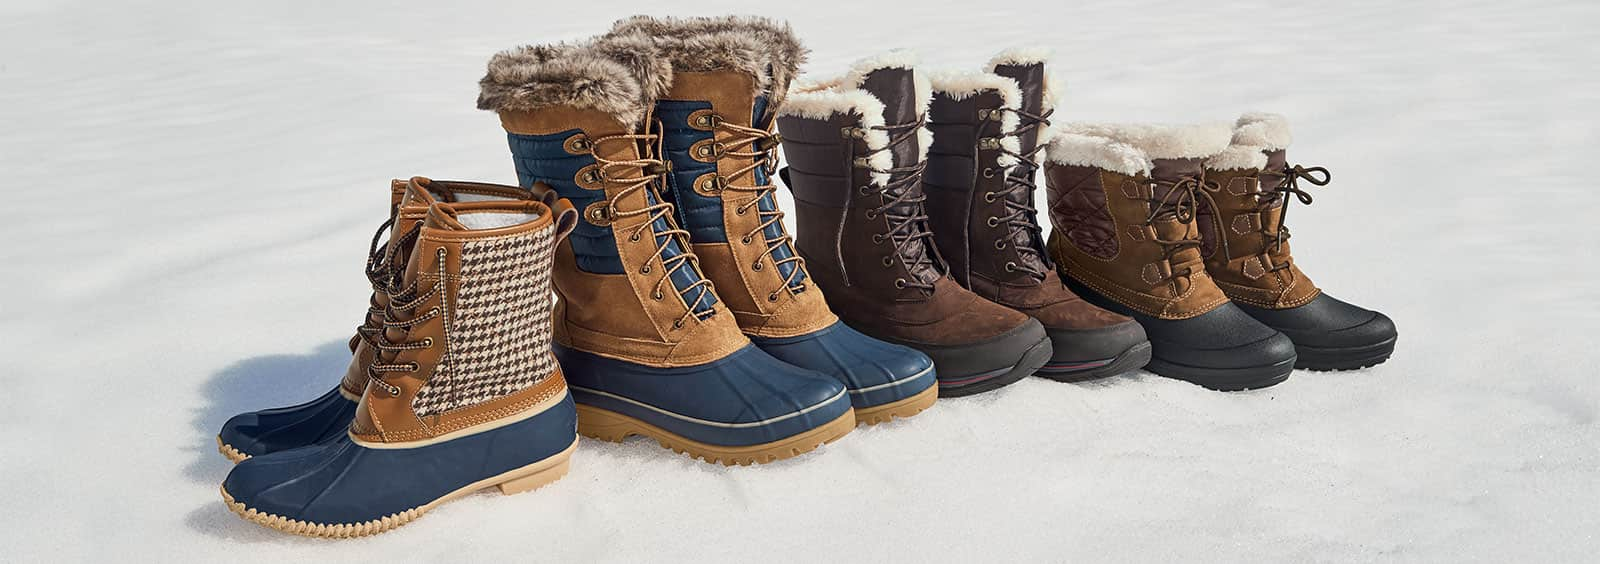 Top 5 Winter Boot Styles to Brave the Snow